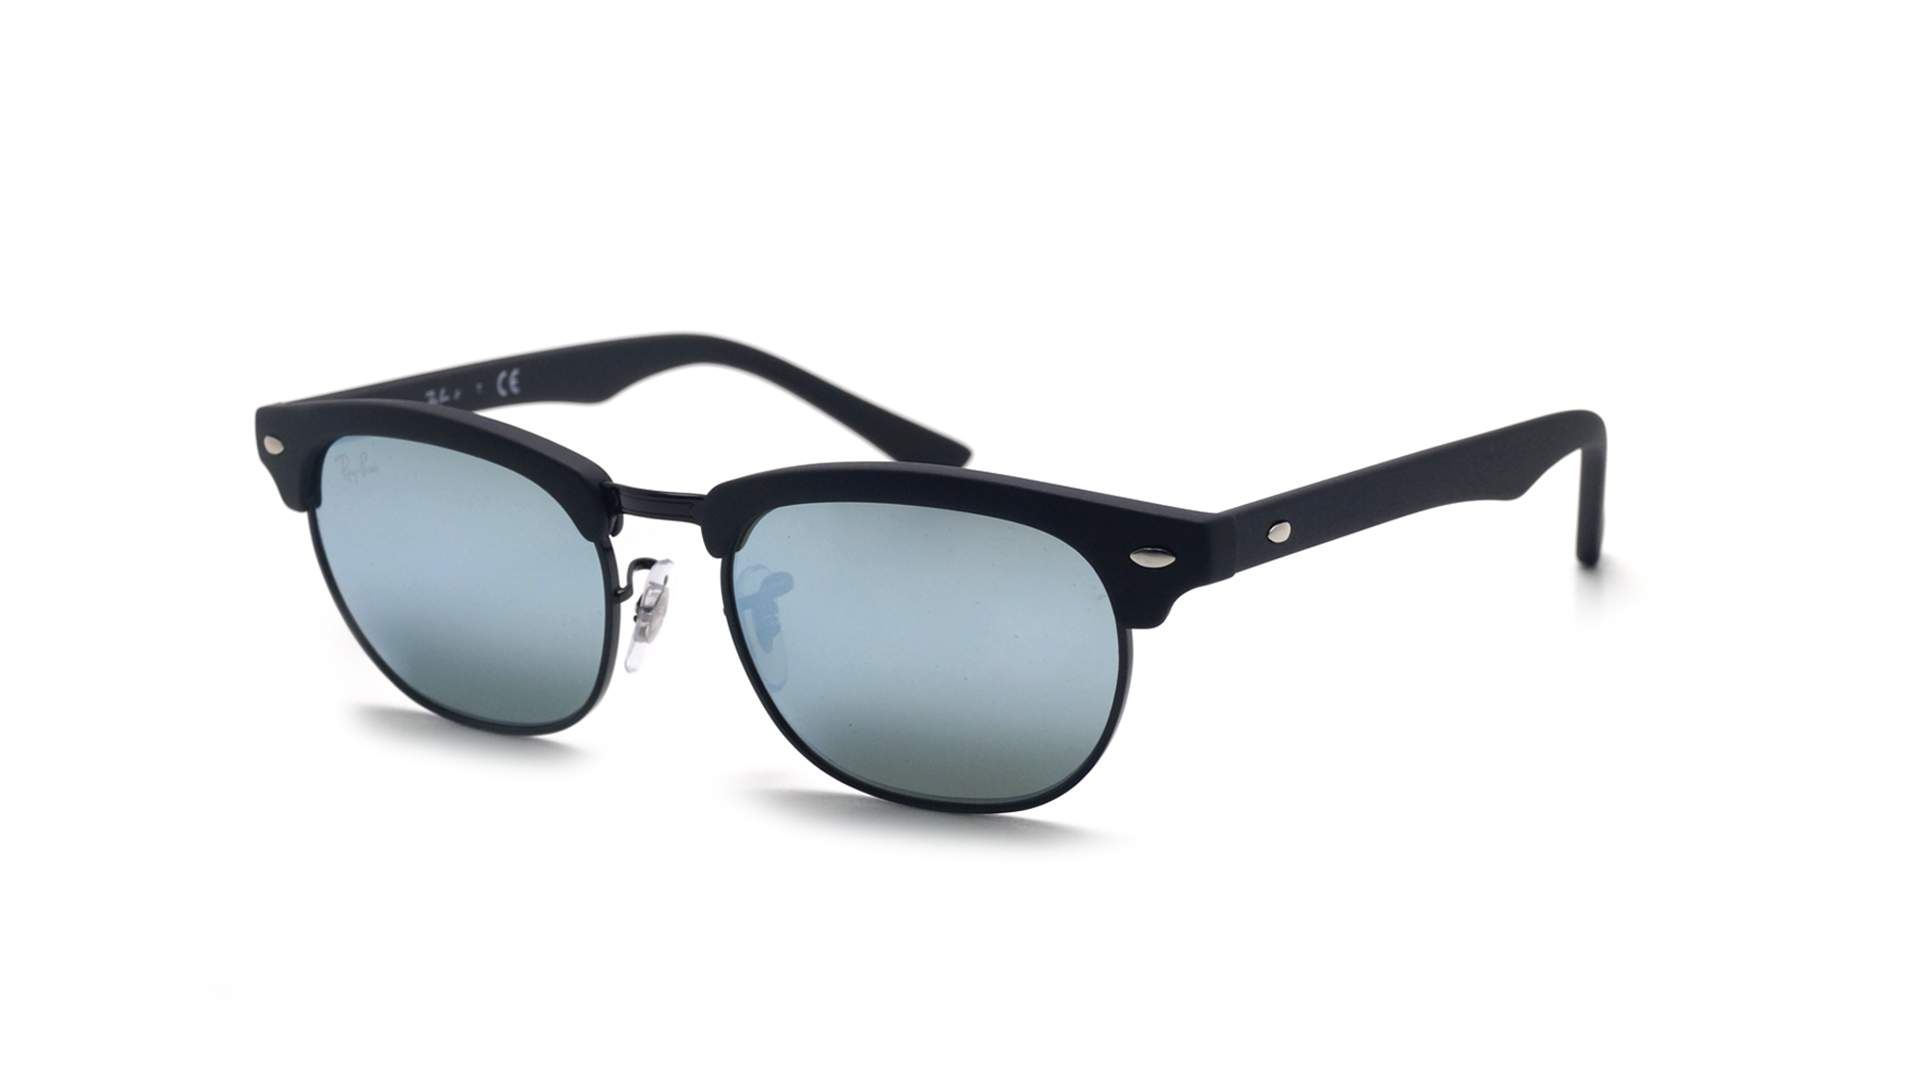 a7aa2829873 ... switzerland sunglasses ray ban clubmaster black matte rj9050s 100s 30  47 16 junior mirror f6d3d 5b8e0